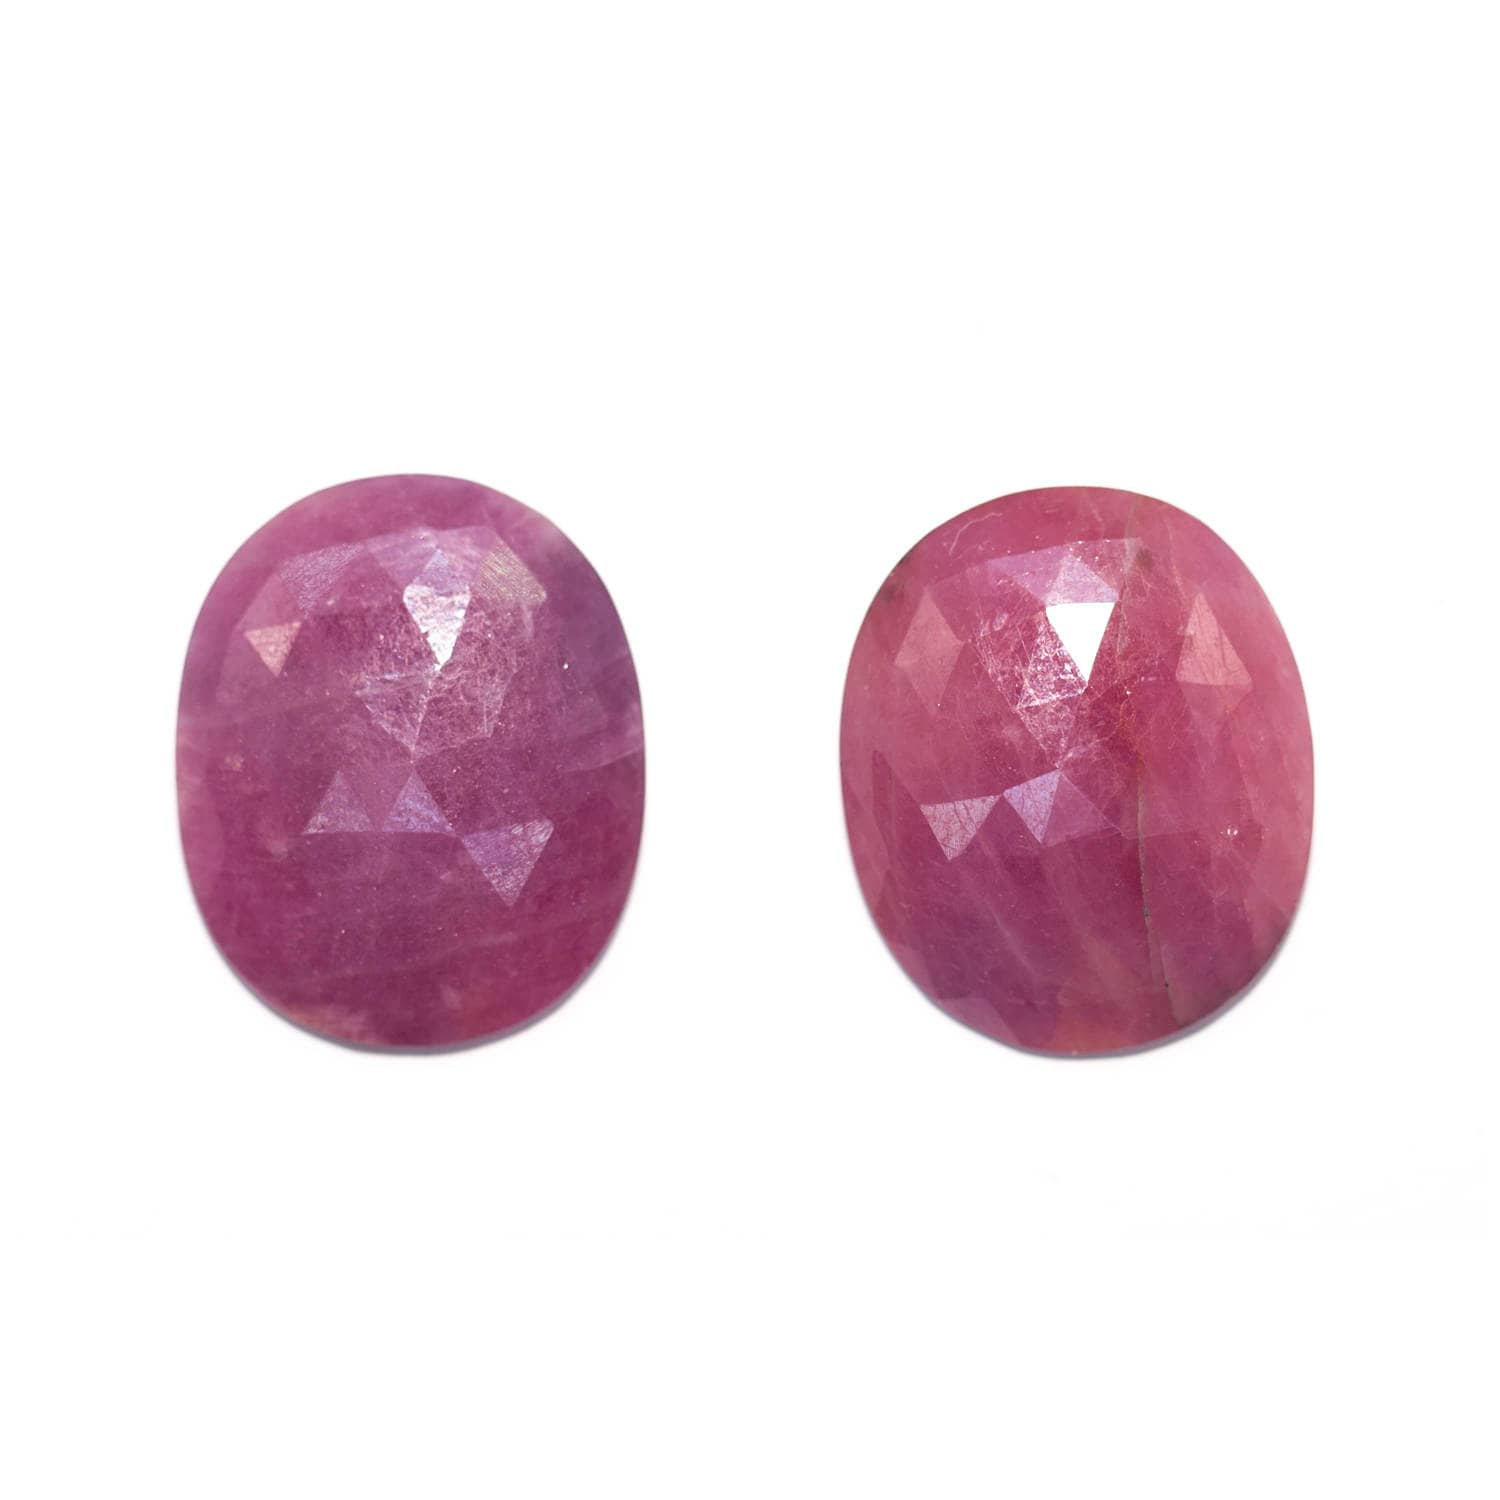 marquise price wholesale loose ruby online gemstone gemstones rumqfreeflibredrured buy mozambique faceted